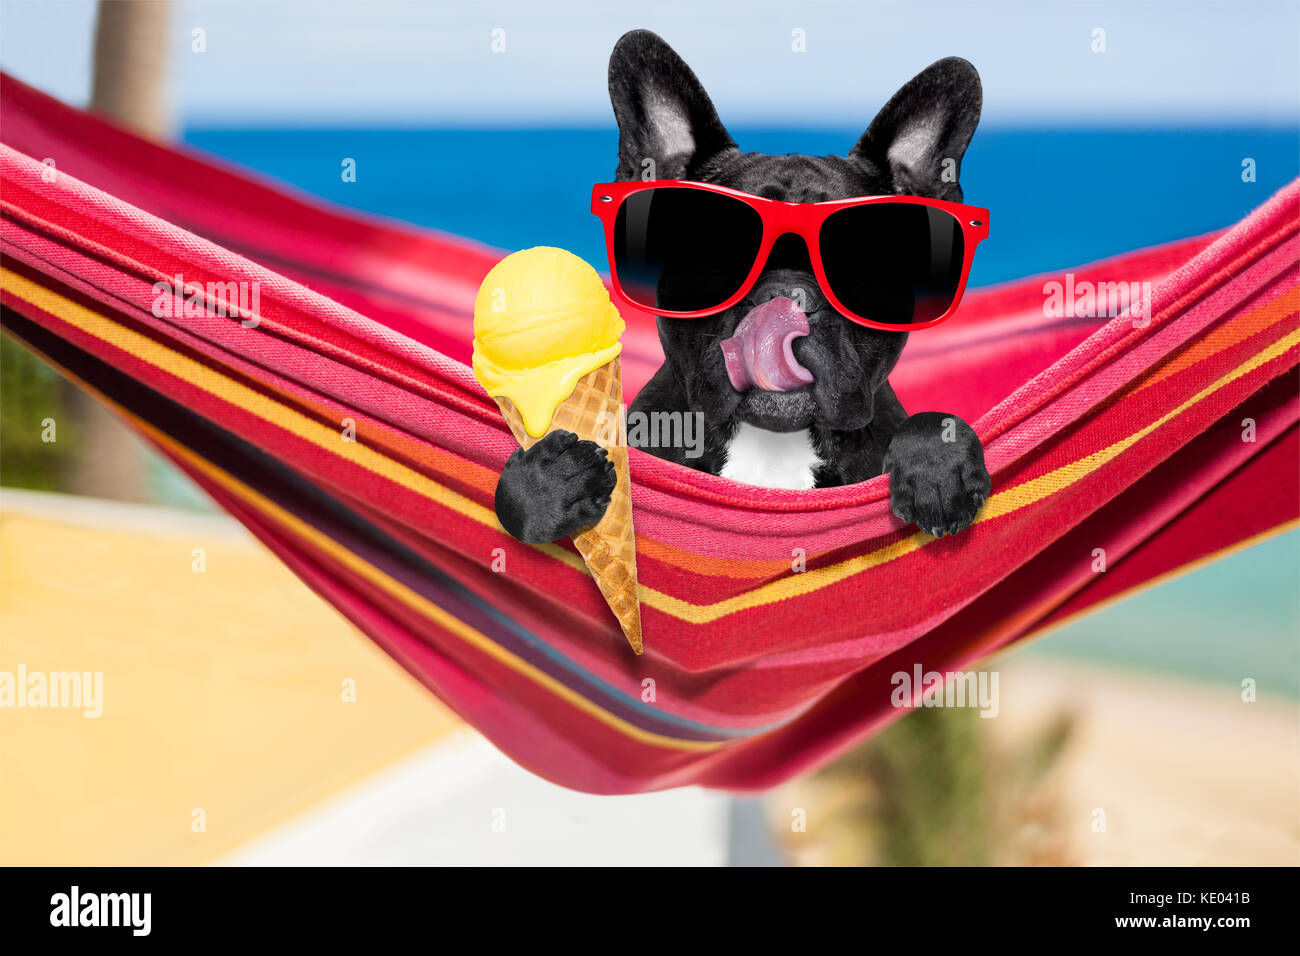 french bulldog dog on hammock at the beach relaxing on summer vacation holidays eating a fresh lemon or vanilla ice cream on a cone waffle french bulldog dog on hammock at the beach relaxing on summer      rh   alamy